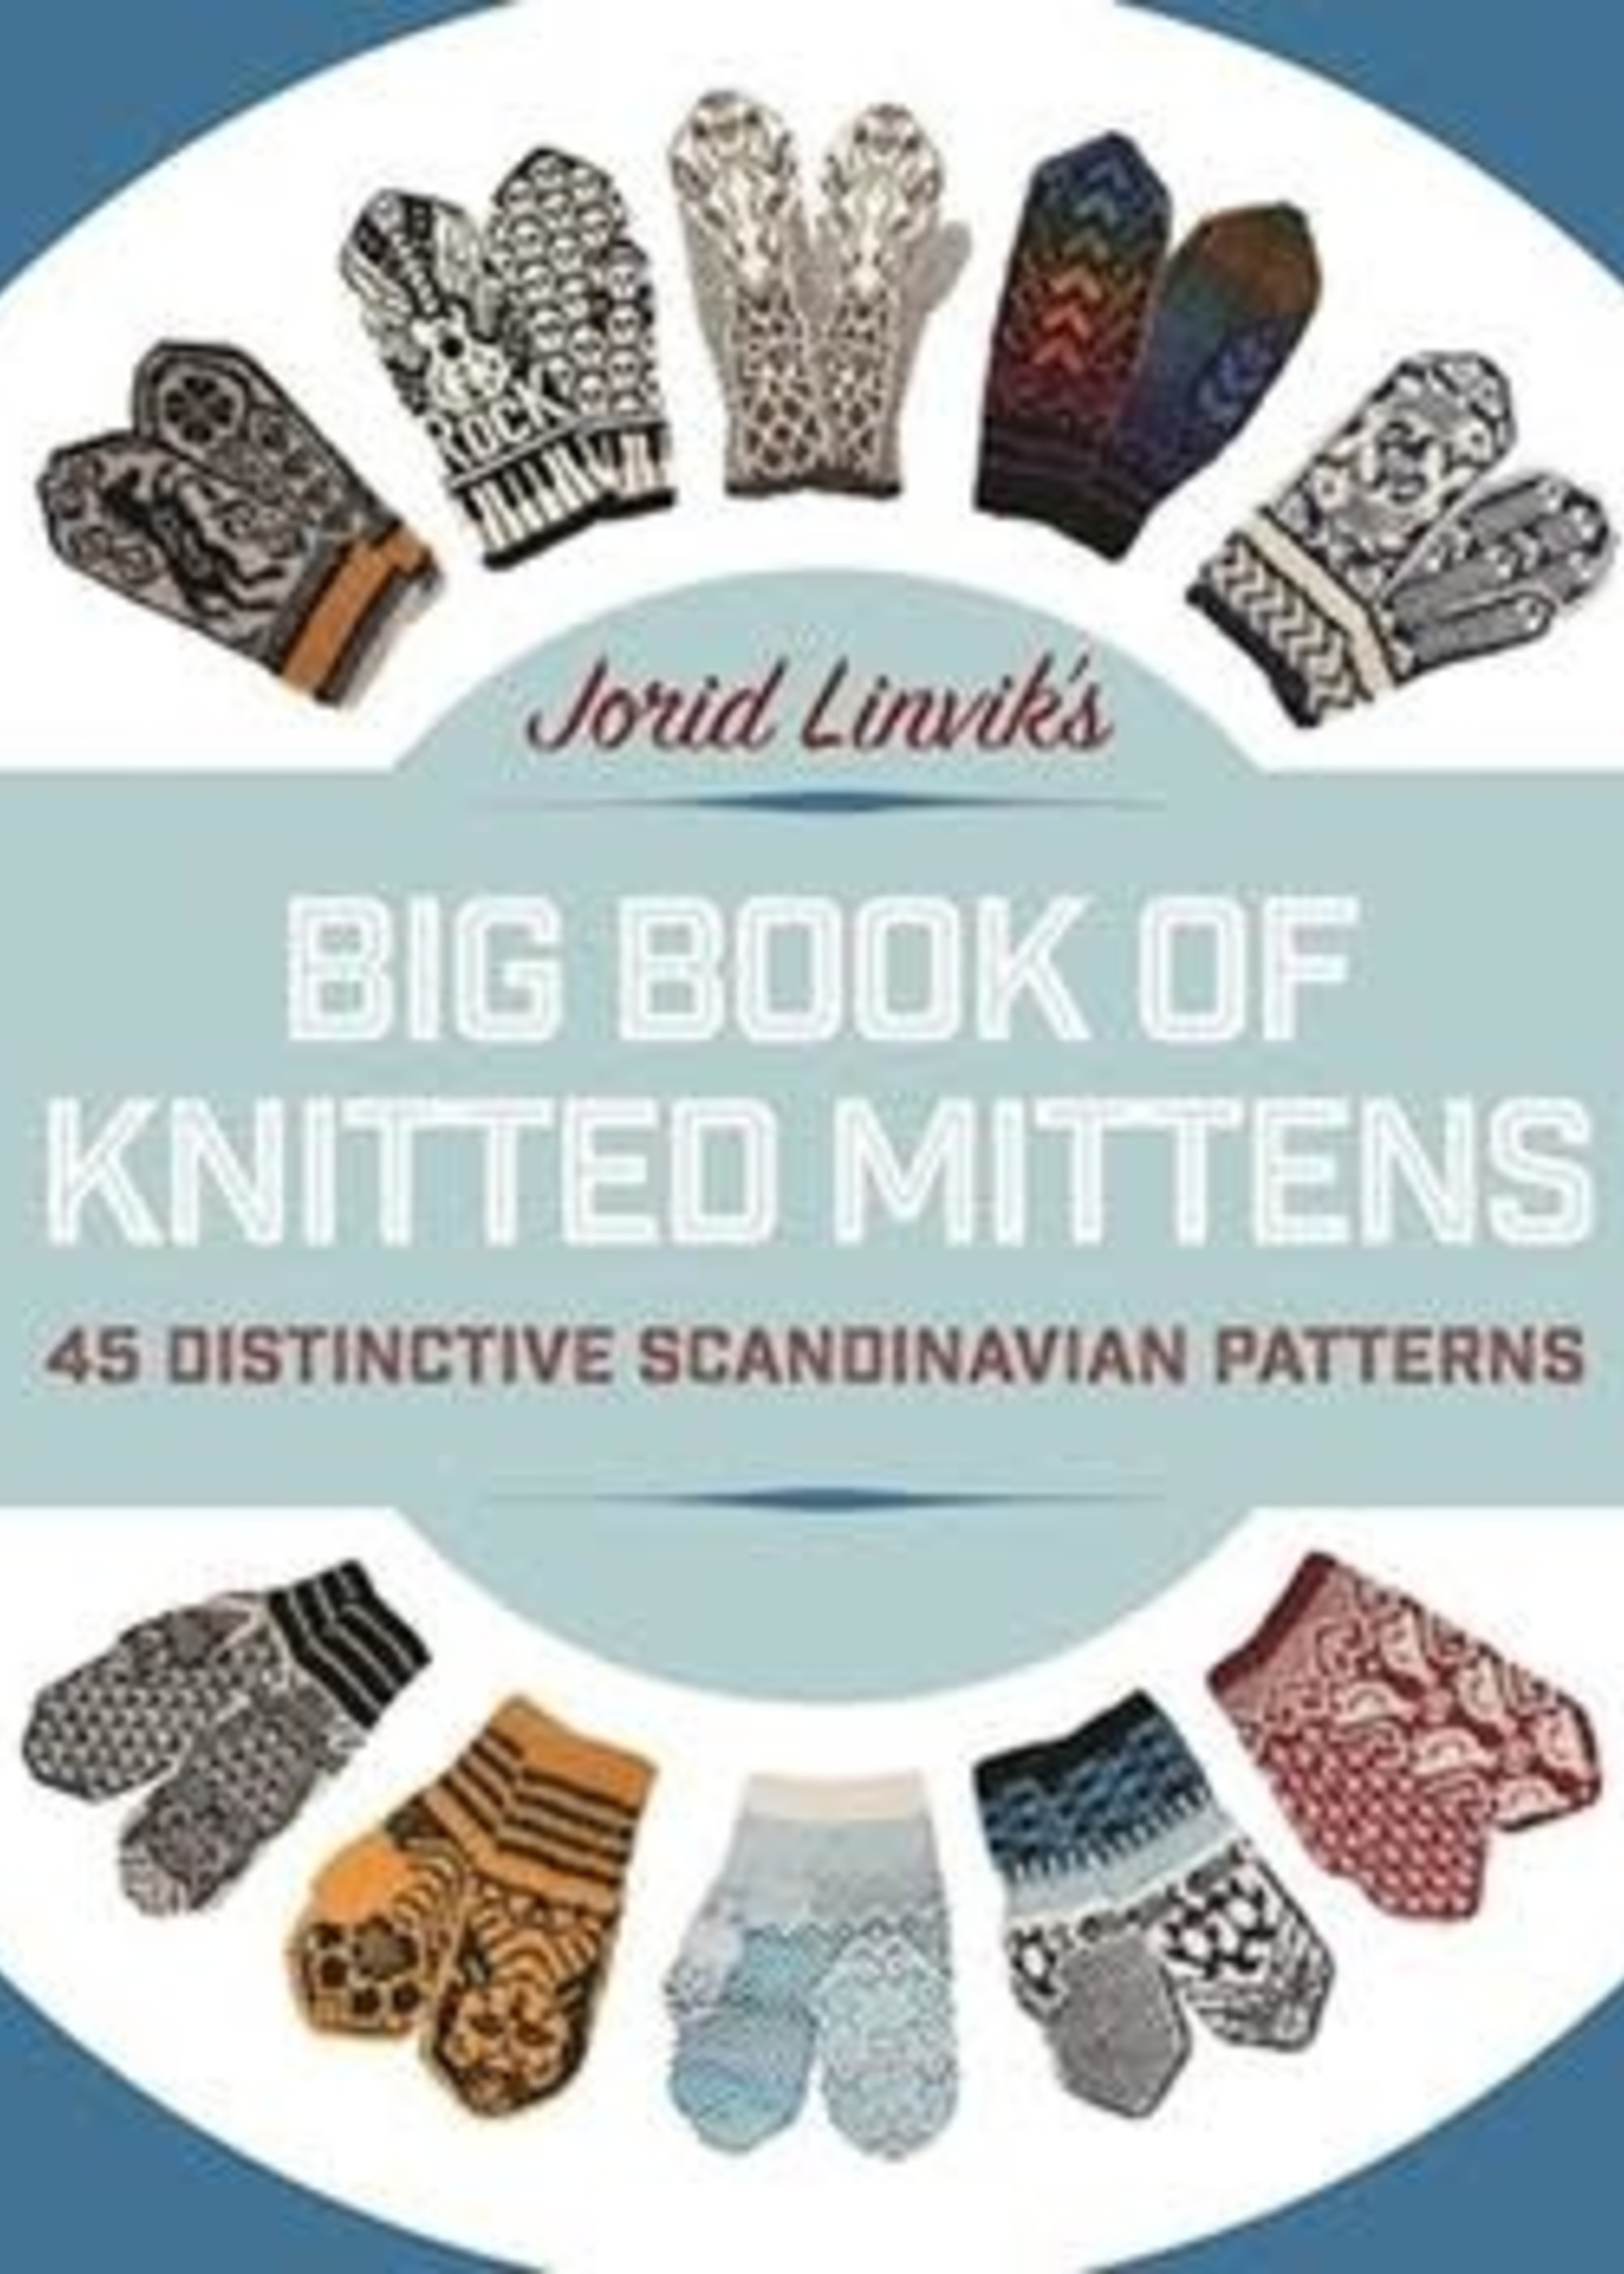 Big Book of Knitted Mittens